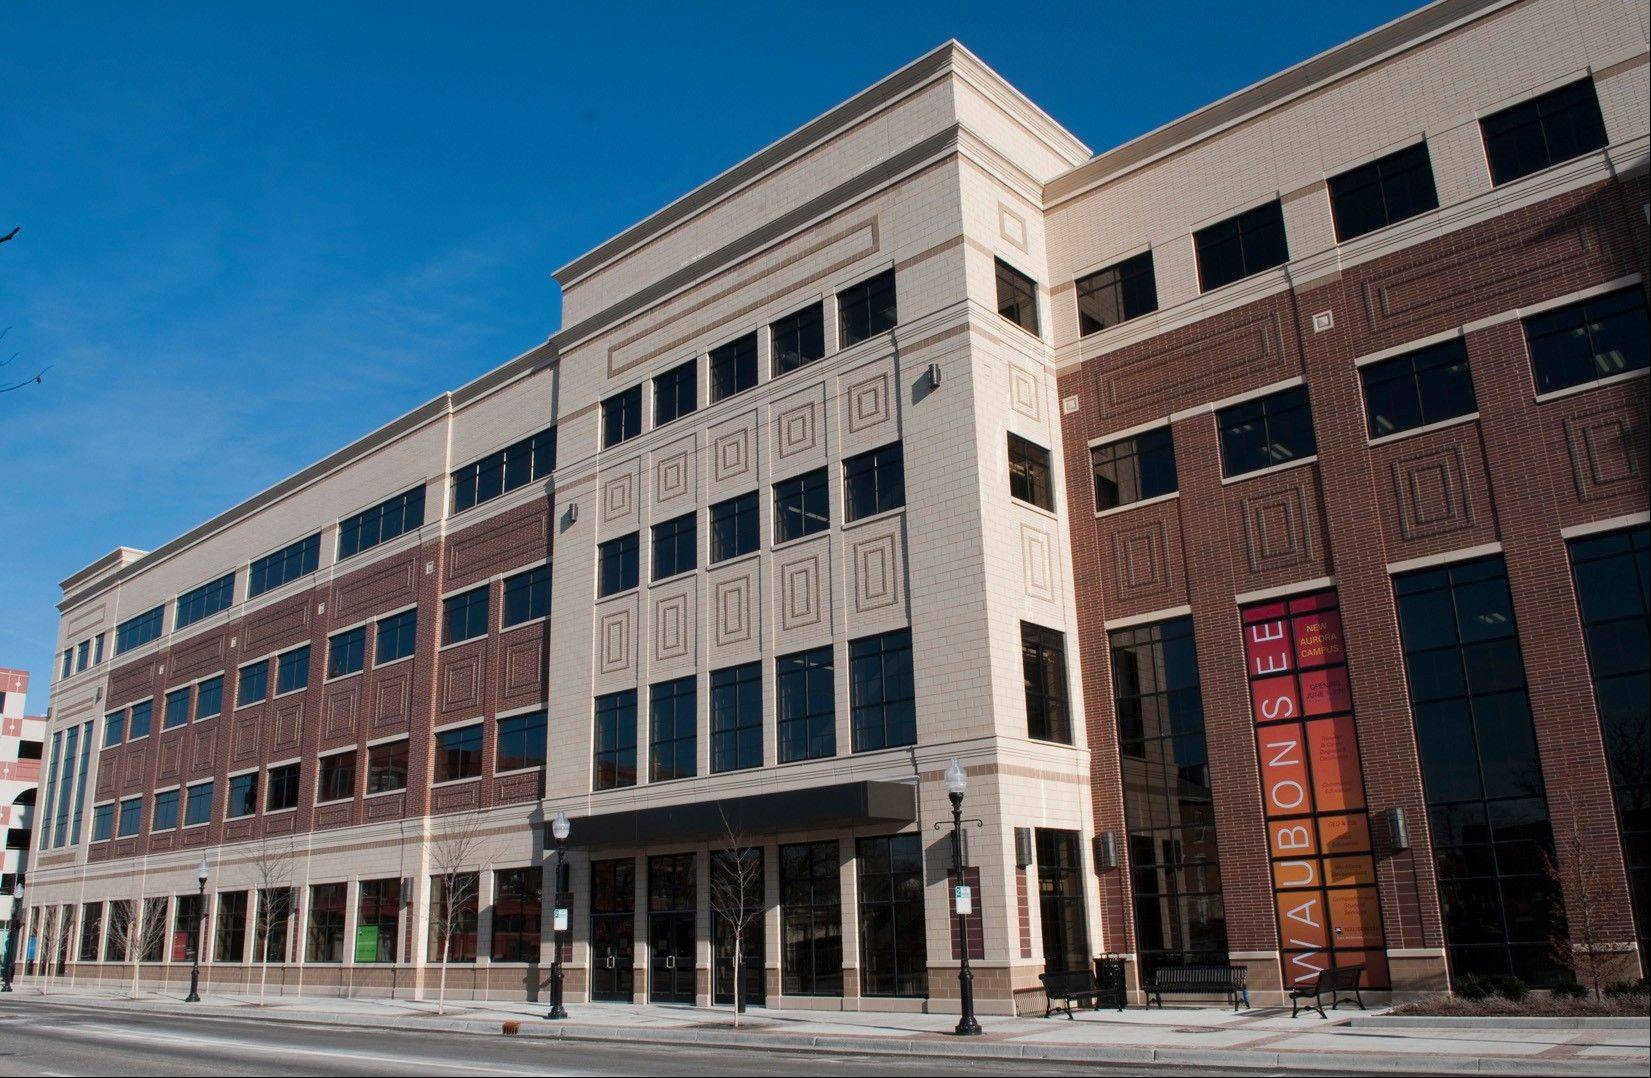 The $50 million Waubonsee Community College in downtown Aurora opened in 2011 featuring an upper and a lower riverwalk on the Fox River and green features like rain gardens to protect the water's quality. Taking up an entire city block, the 132,000-square-foot building is one of a list of downtown Aurora projects revitalizing the riverfront.